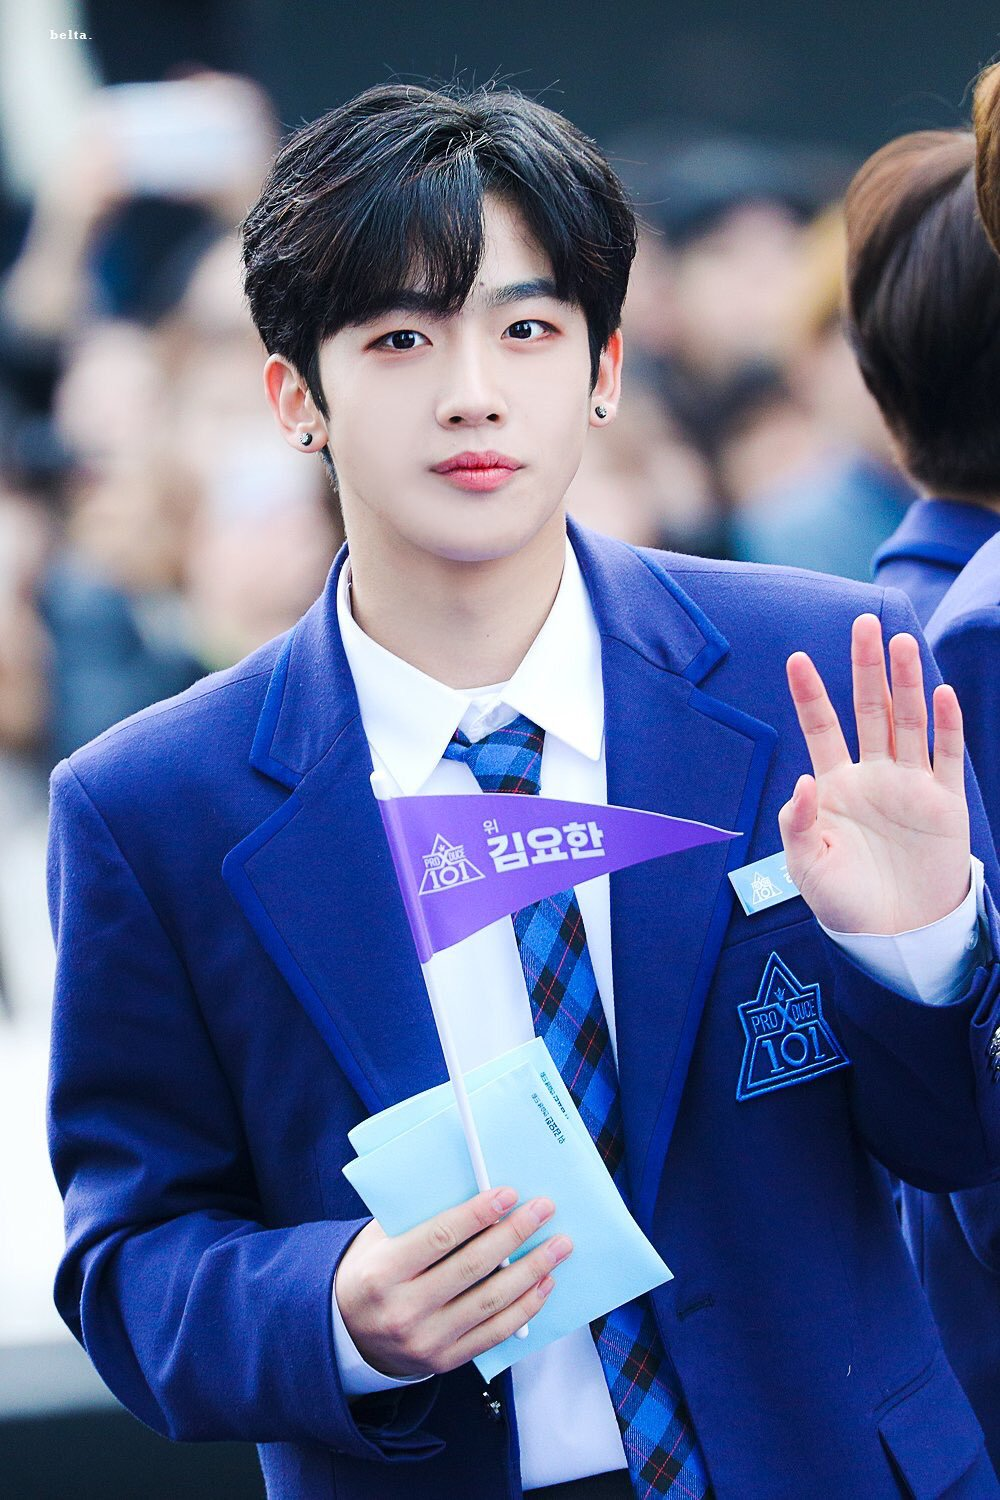 produce x 101, produce x 101 trainees, produce x 101 members, produce x 101 height, produce x 101 company, kpop, trainee, produce x 101 kim yohan, kim yohan